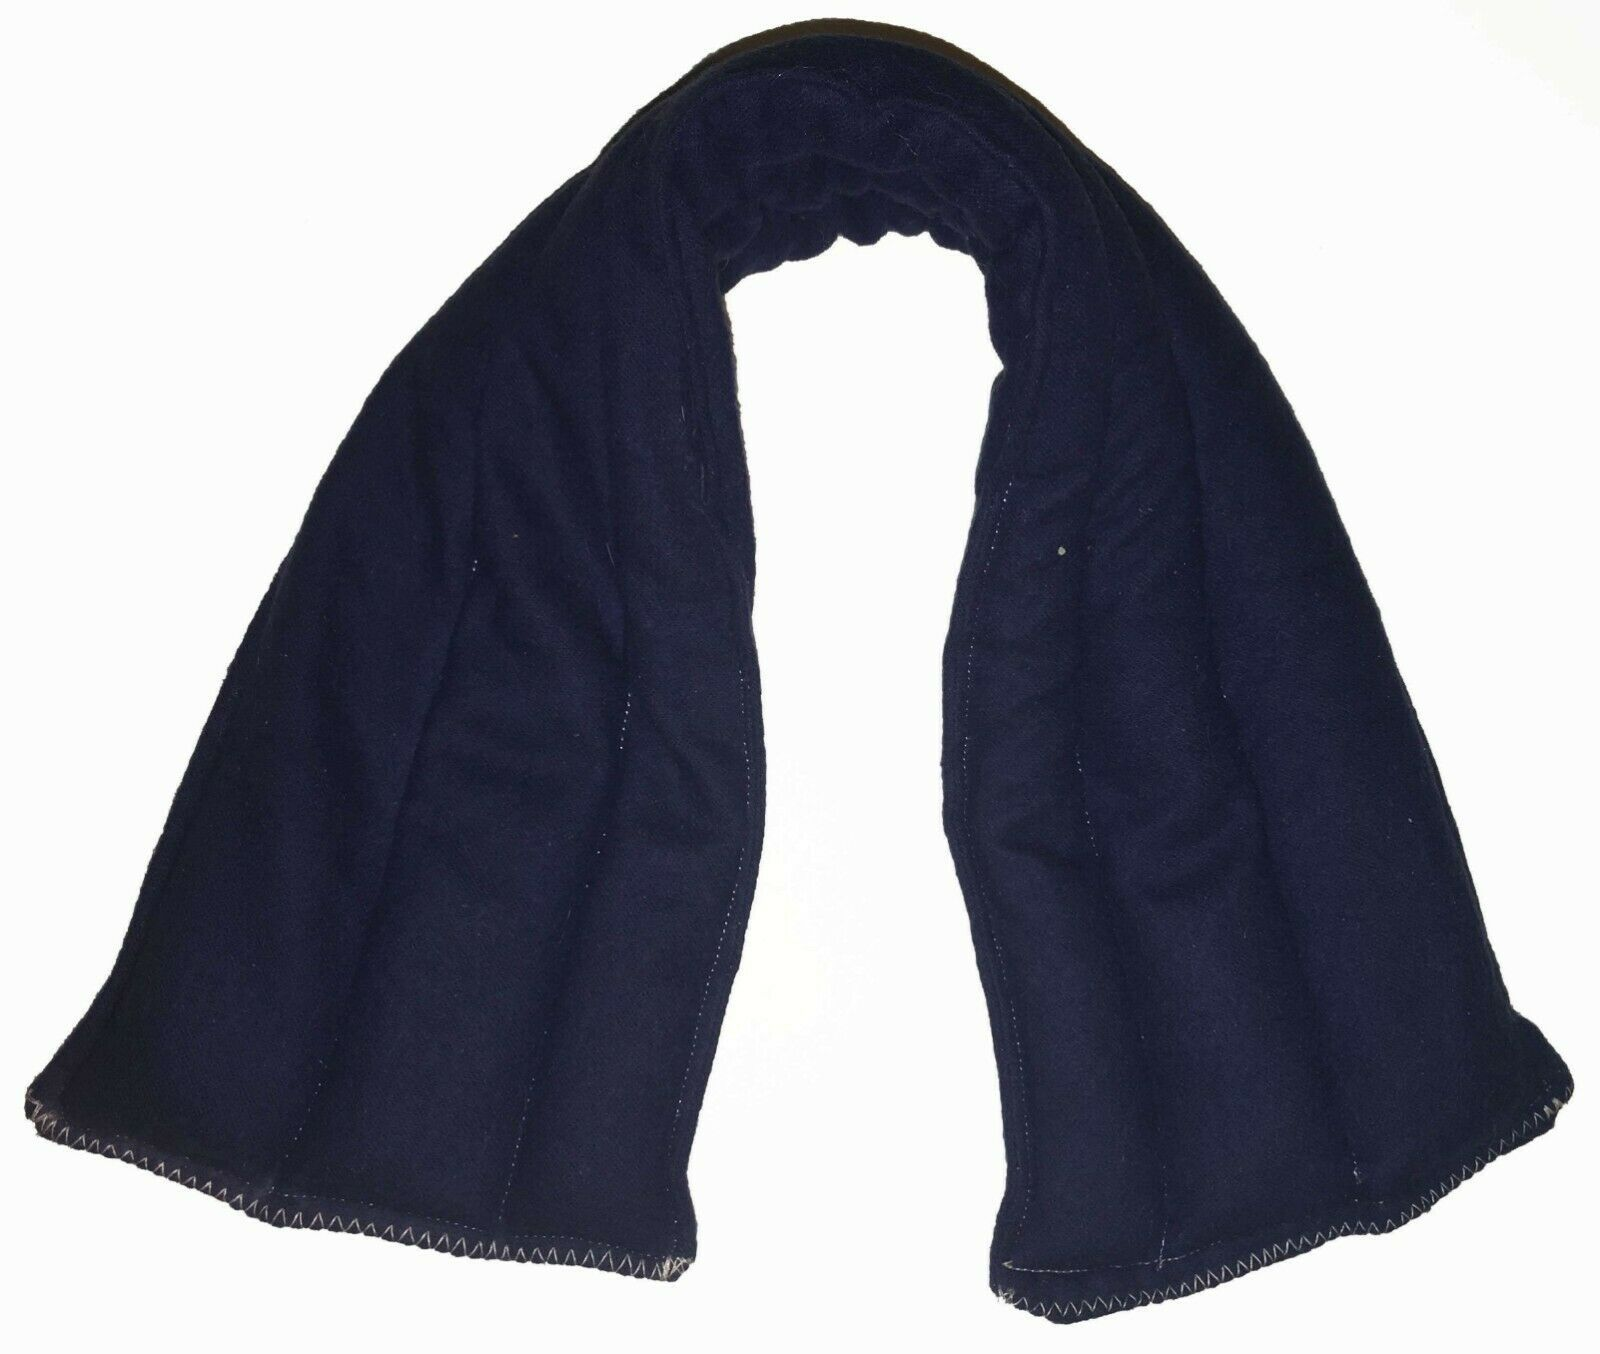 Primary image for Navy Neck Size You Pick a Scent Ricepack Microwaveable Hot Cold Pack Rice Pad